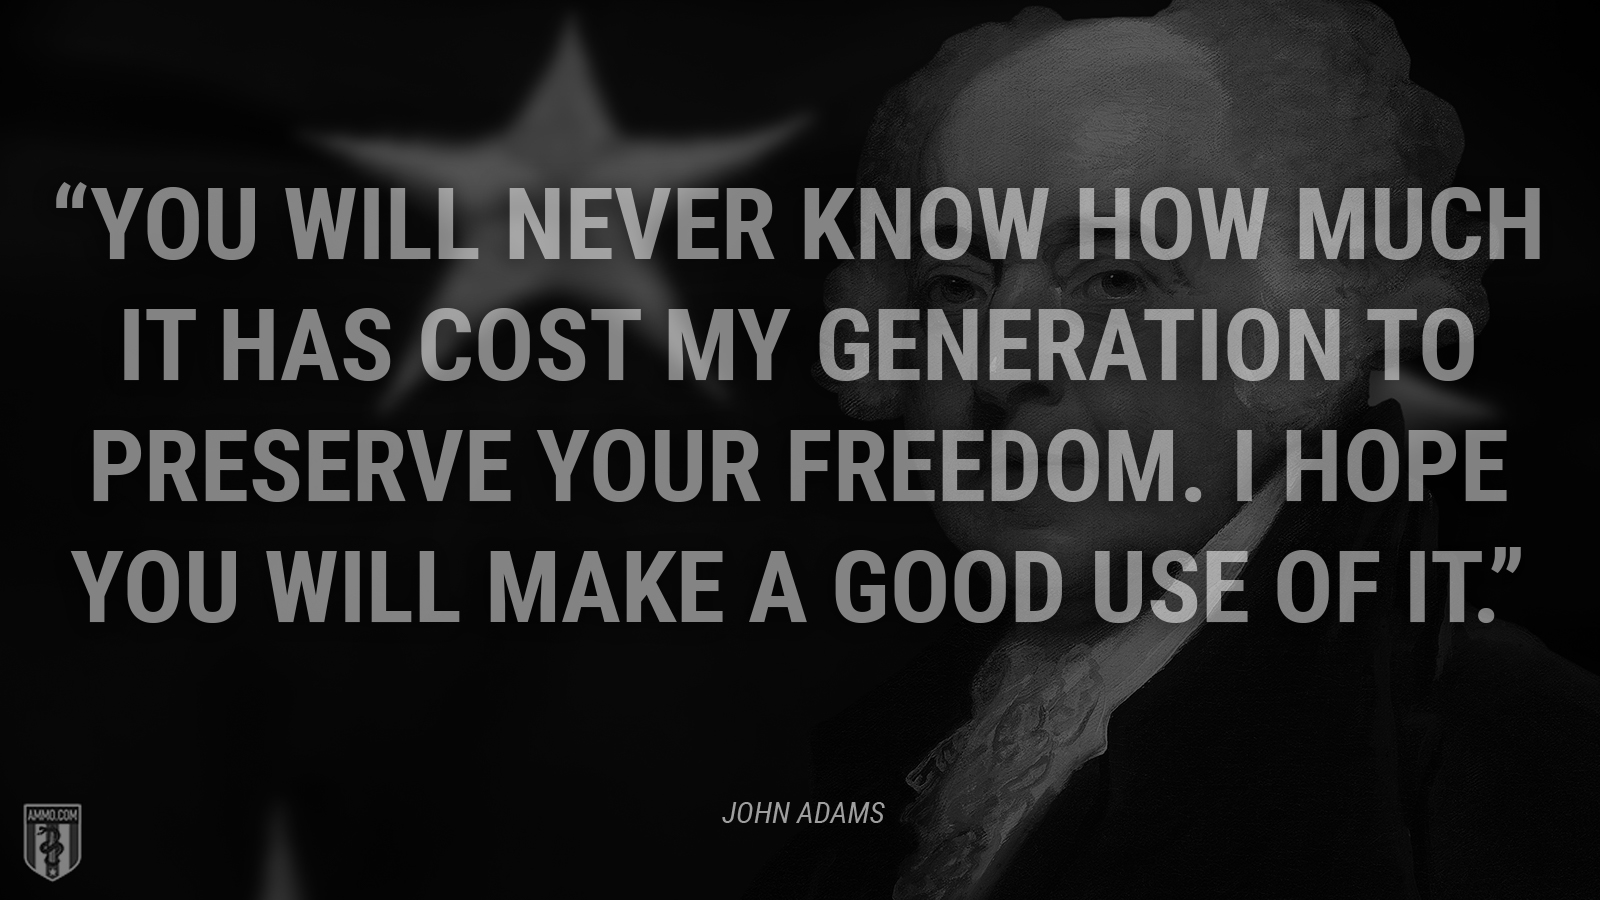 """You will never know how much it has cost my generation to preserve YOUR freedom. I hope you will make a good use of it."" - John Adams"